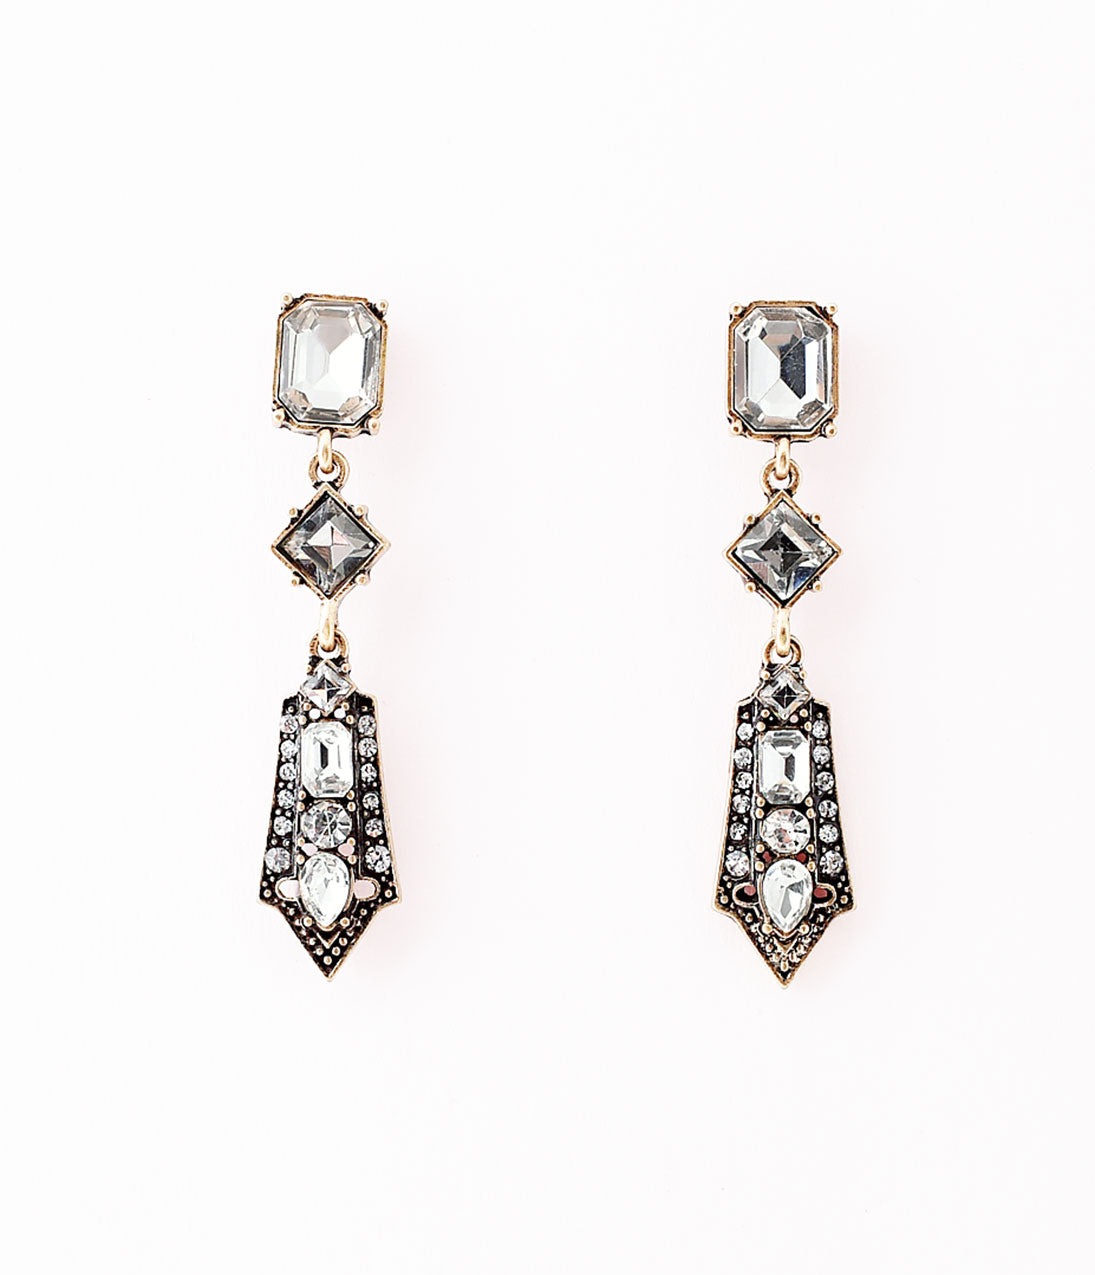 1930s Jewelry | Art Deco Style Jewelry Deco Style Antique Bronze  Silver Crystals Geometric Drop Earrings $22.00 AT vintagedancer.com